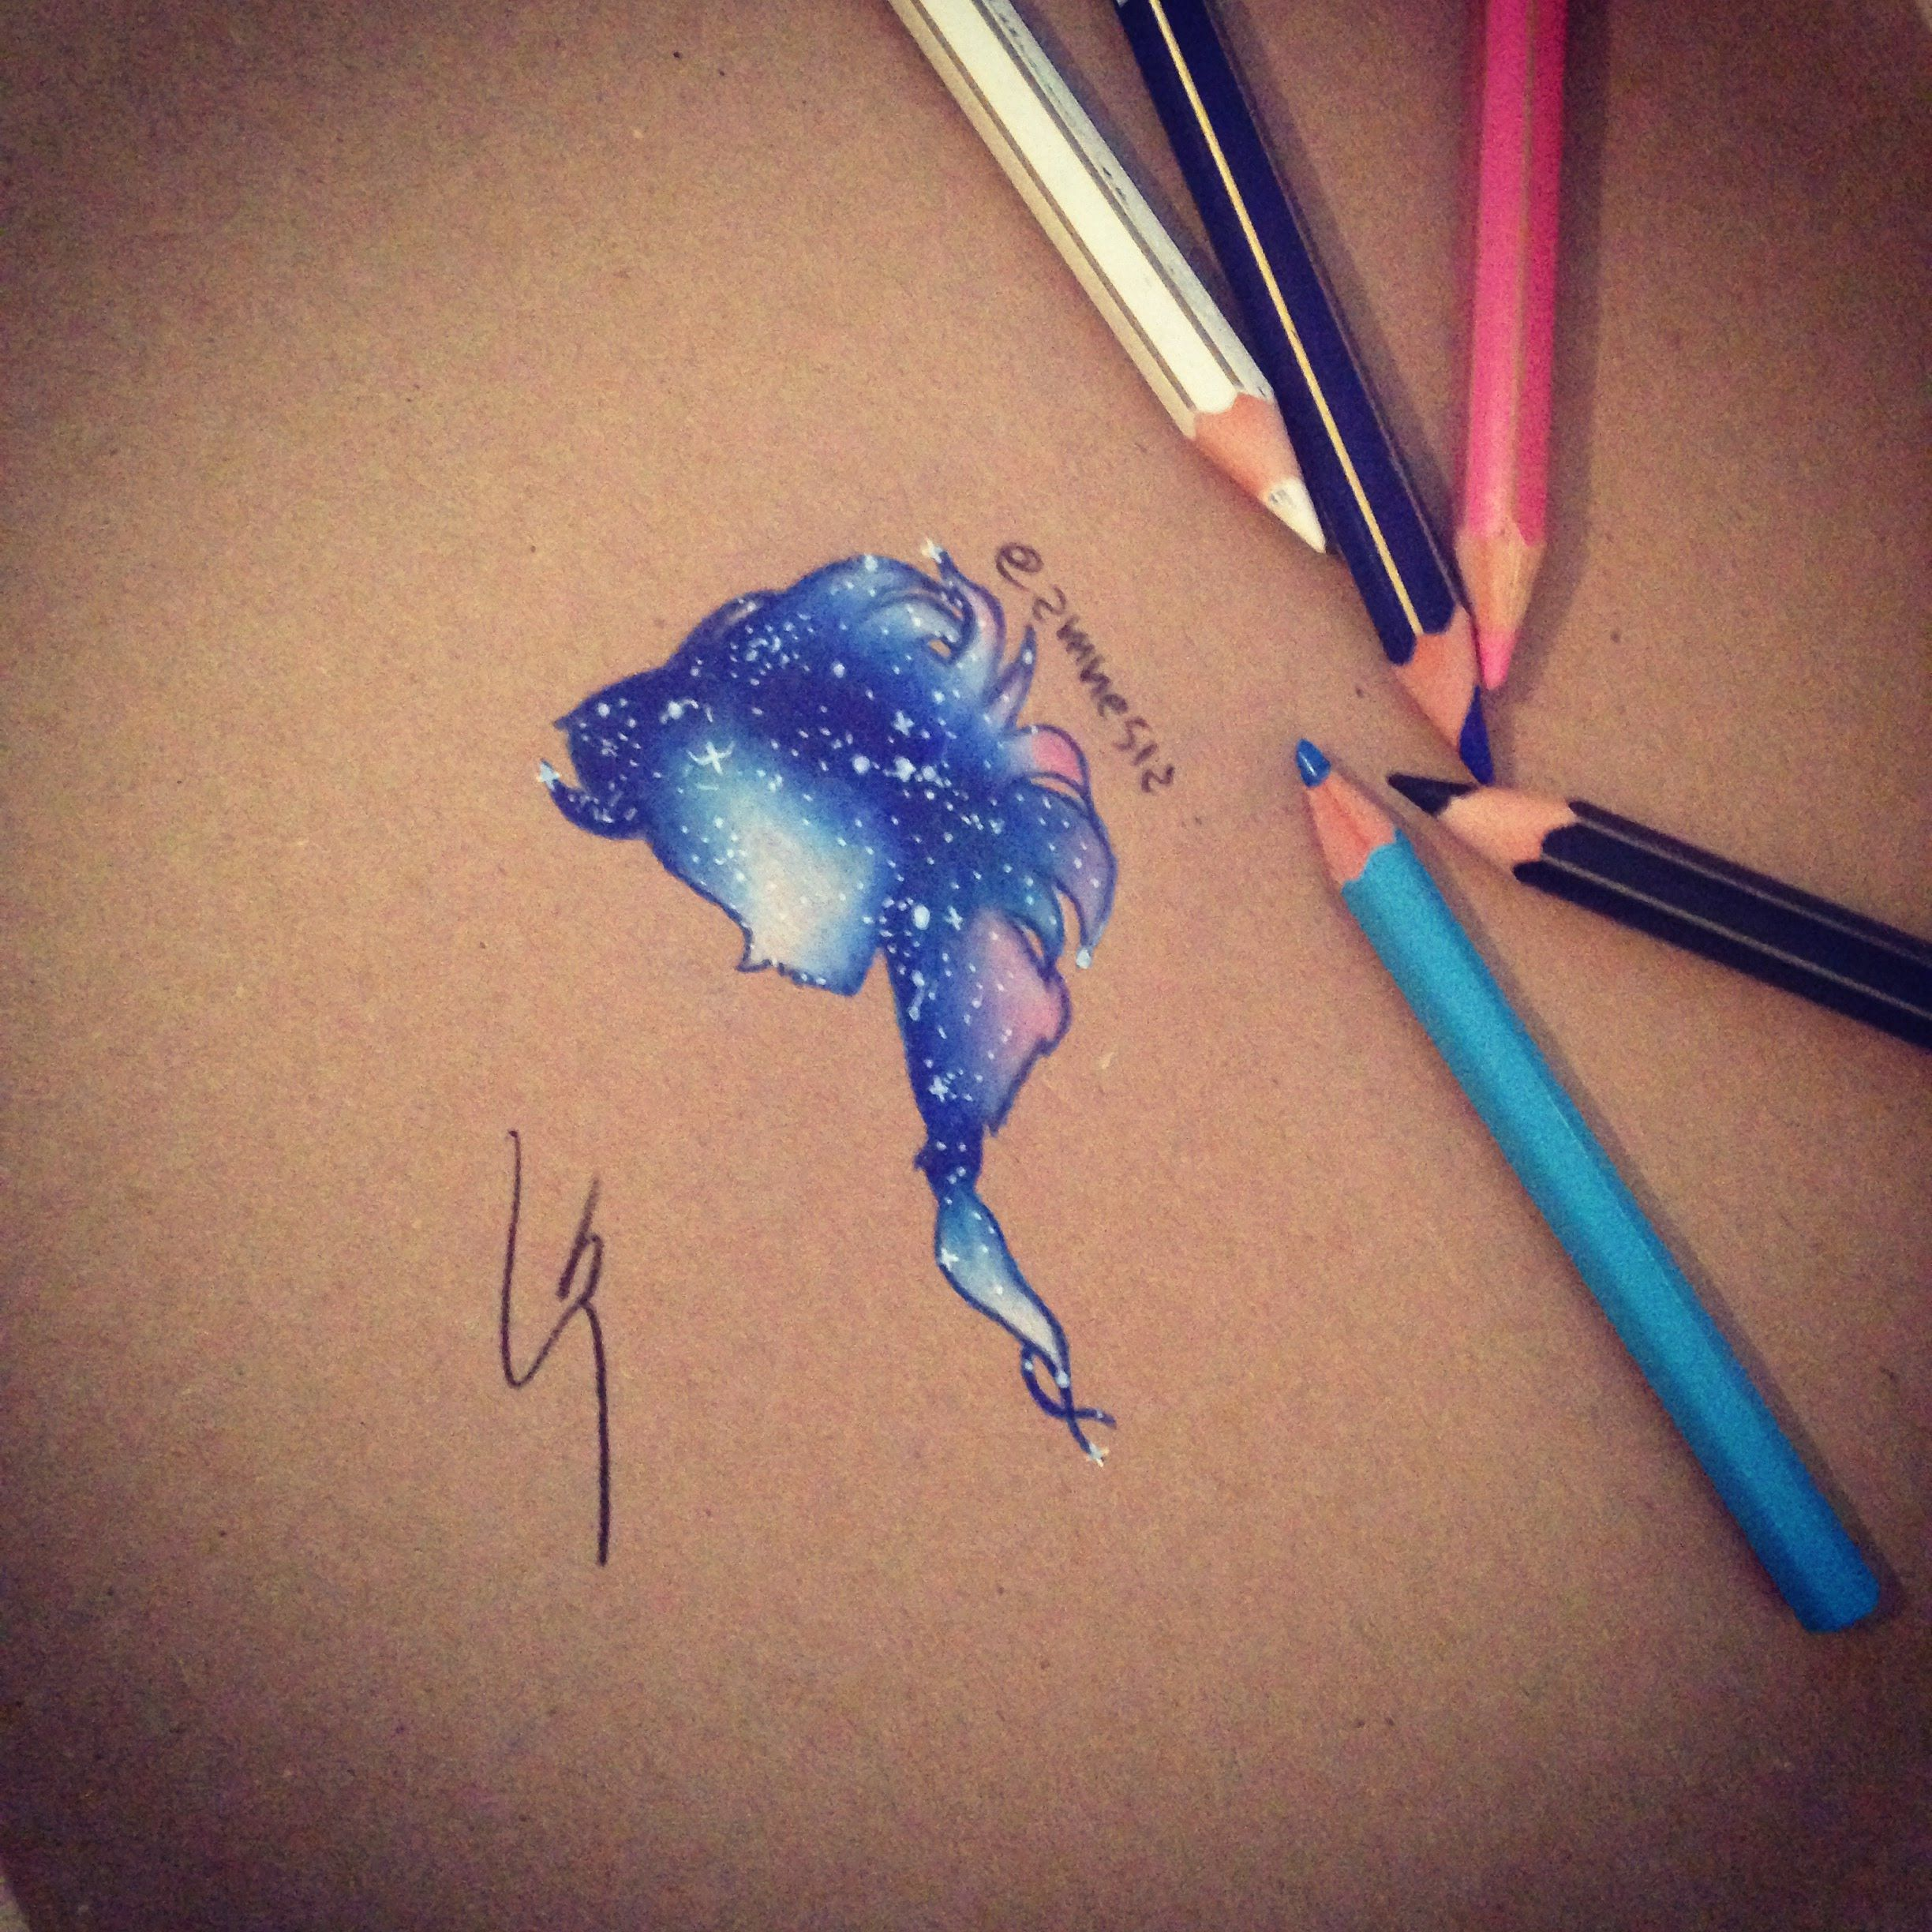 How to draw with colored pencils - How To Draw Galaxy Elsa With Colored Pencil By Sgalia Giuseppe